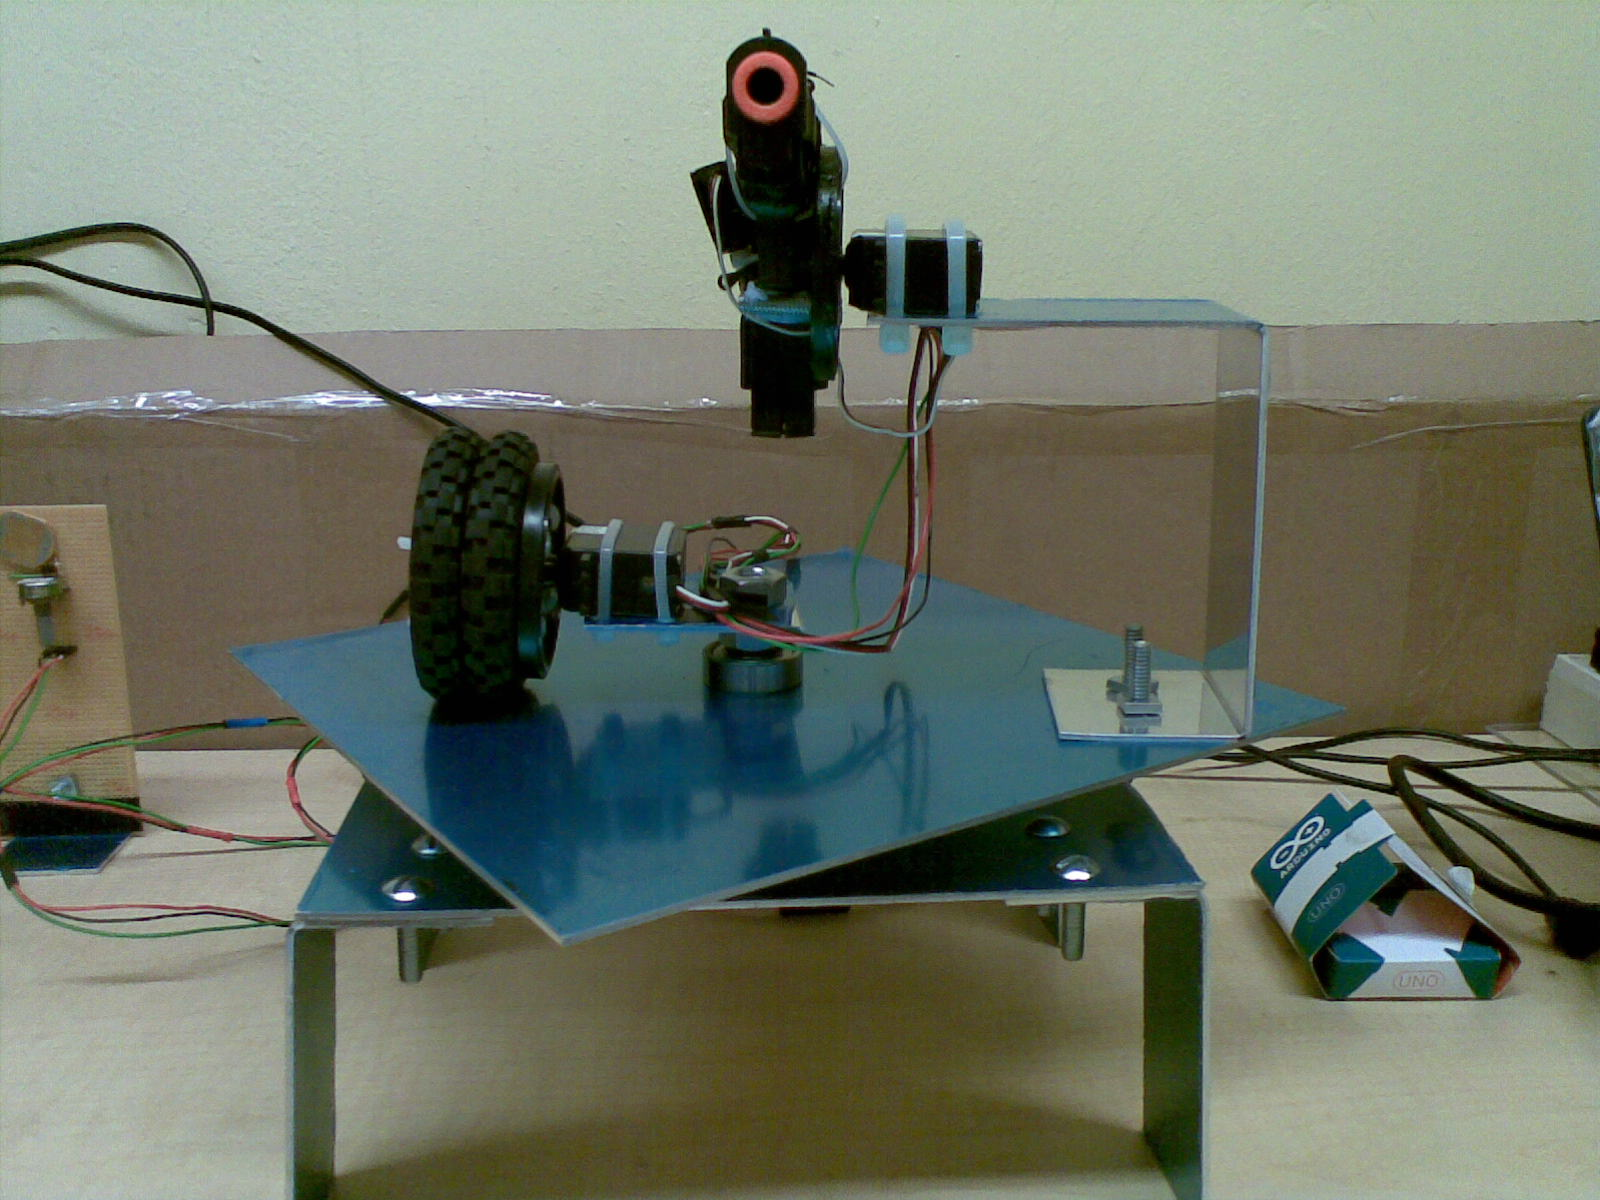 Picture of Building a Sentry Gun With Laser Trip Wire System and Arduino